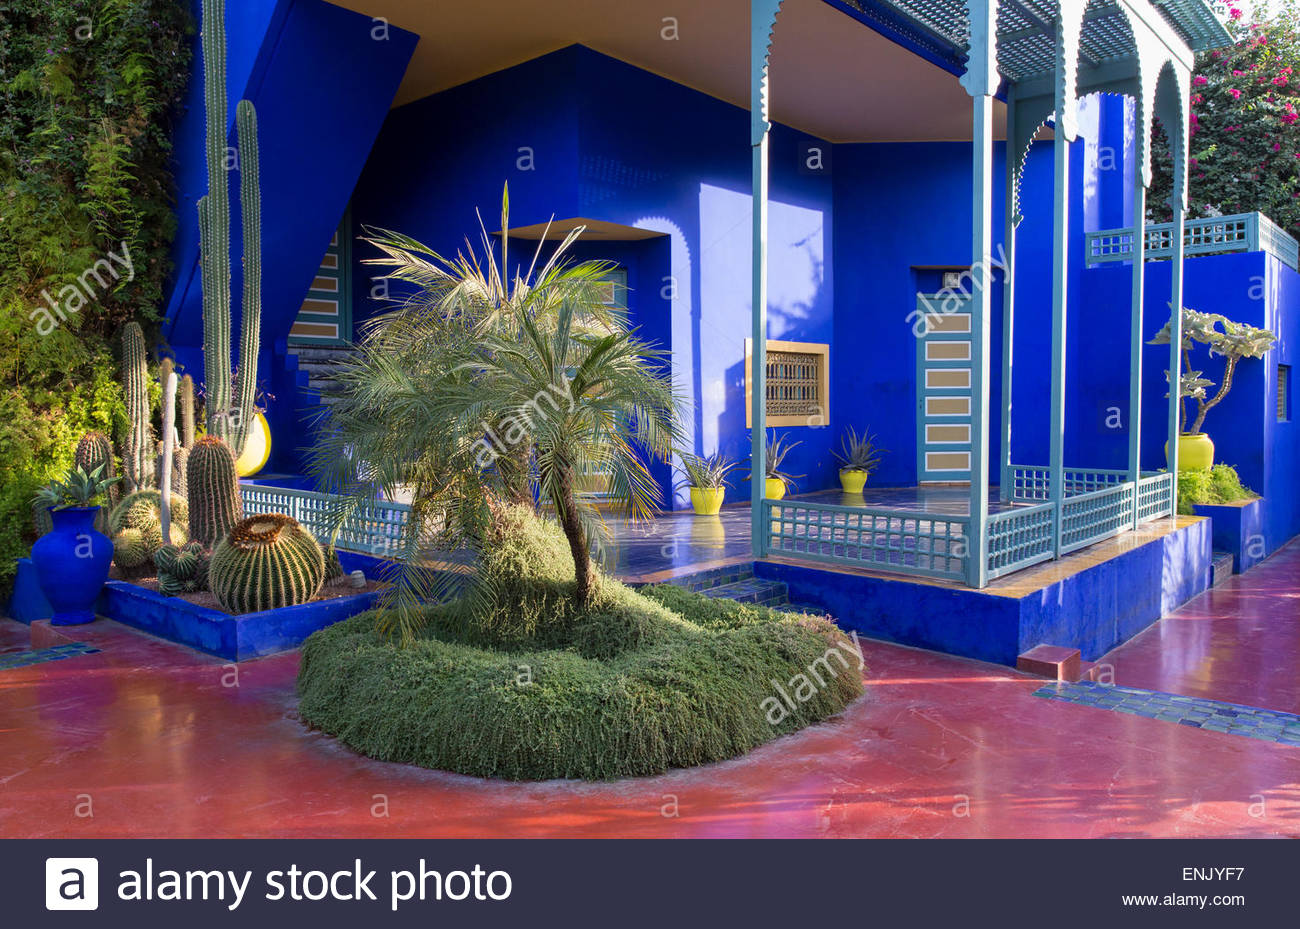 Jardin majorelle owned by yves st laurent marrakech morocco stock photo royalty free image - Jardin majorelle yves saint laurent ...